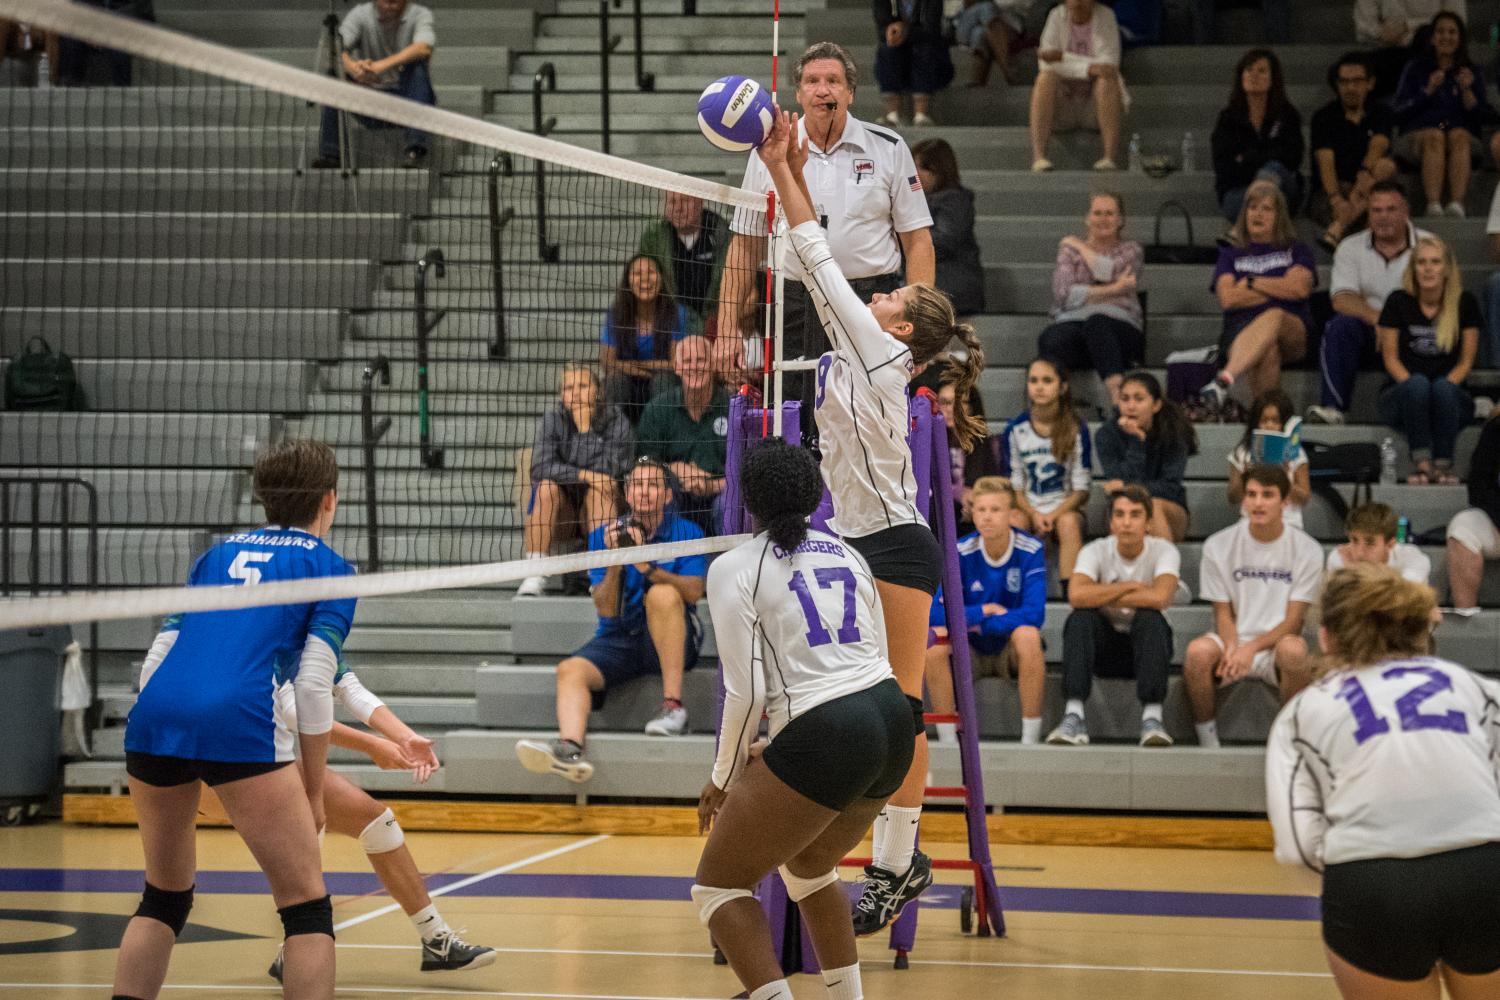 After receiving a set from junior Mujay Mambu, freshman Gabi Axelrod earns a point for Chantilly during the game against Westfield.